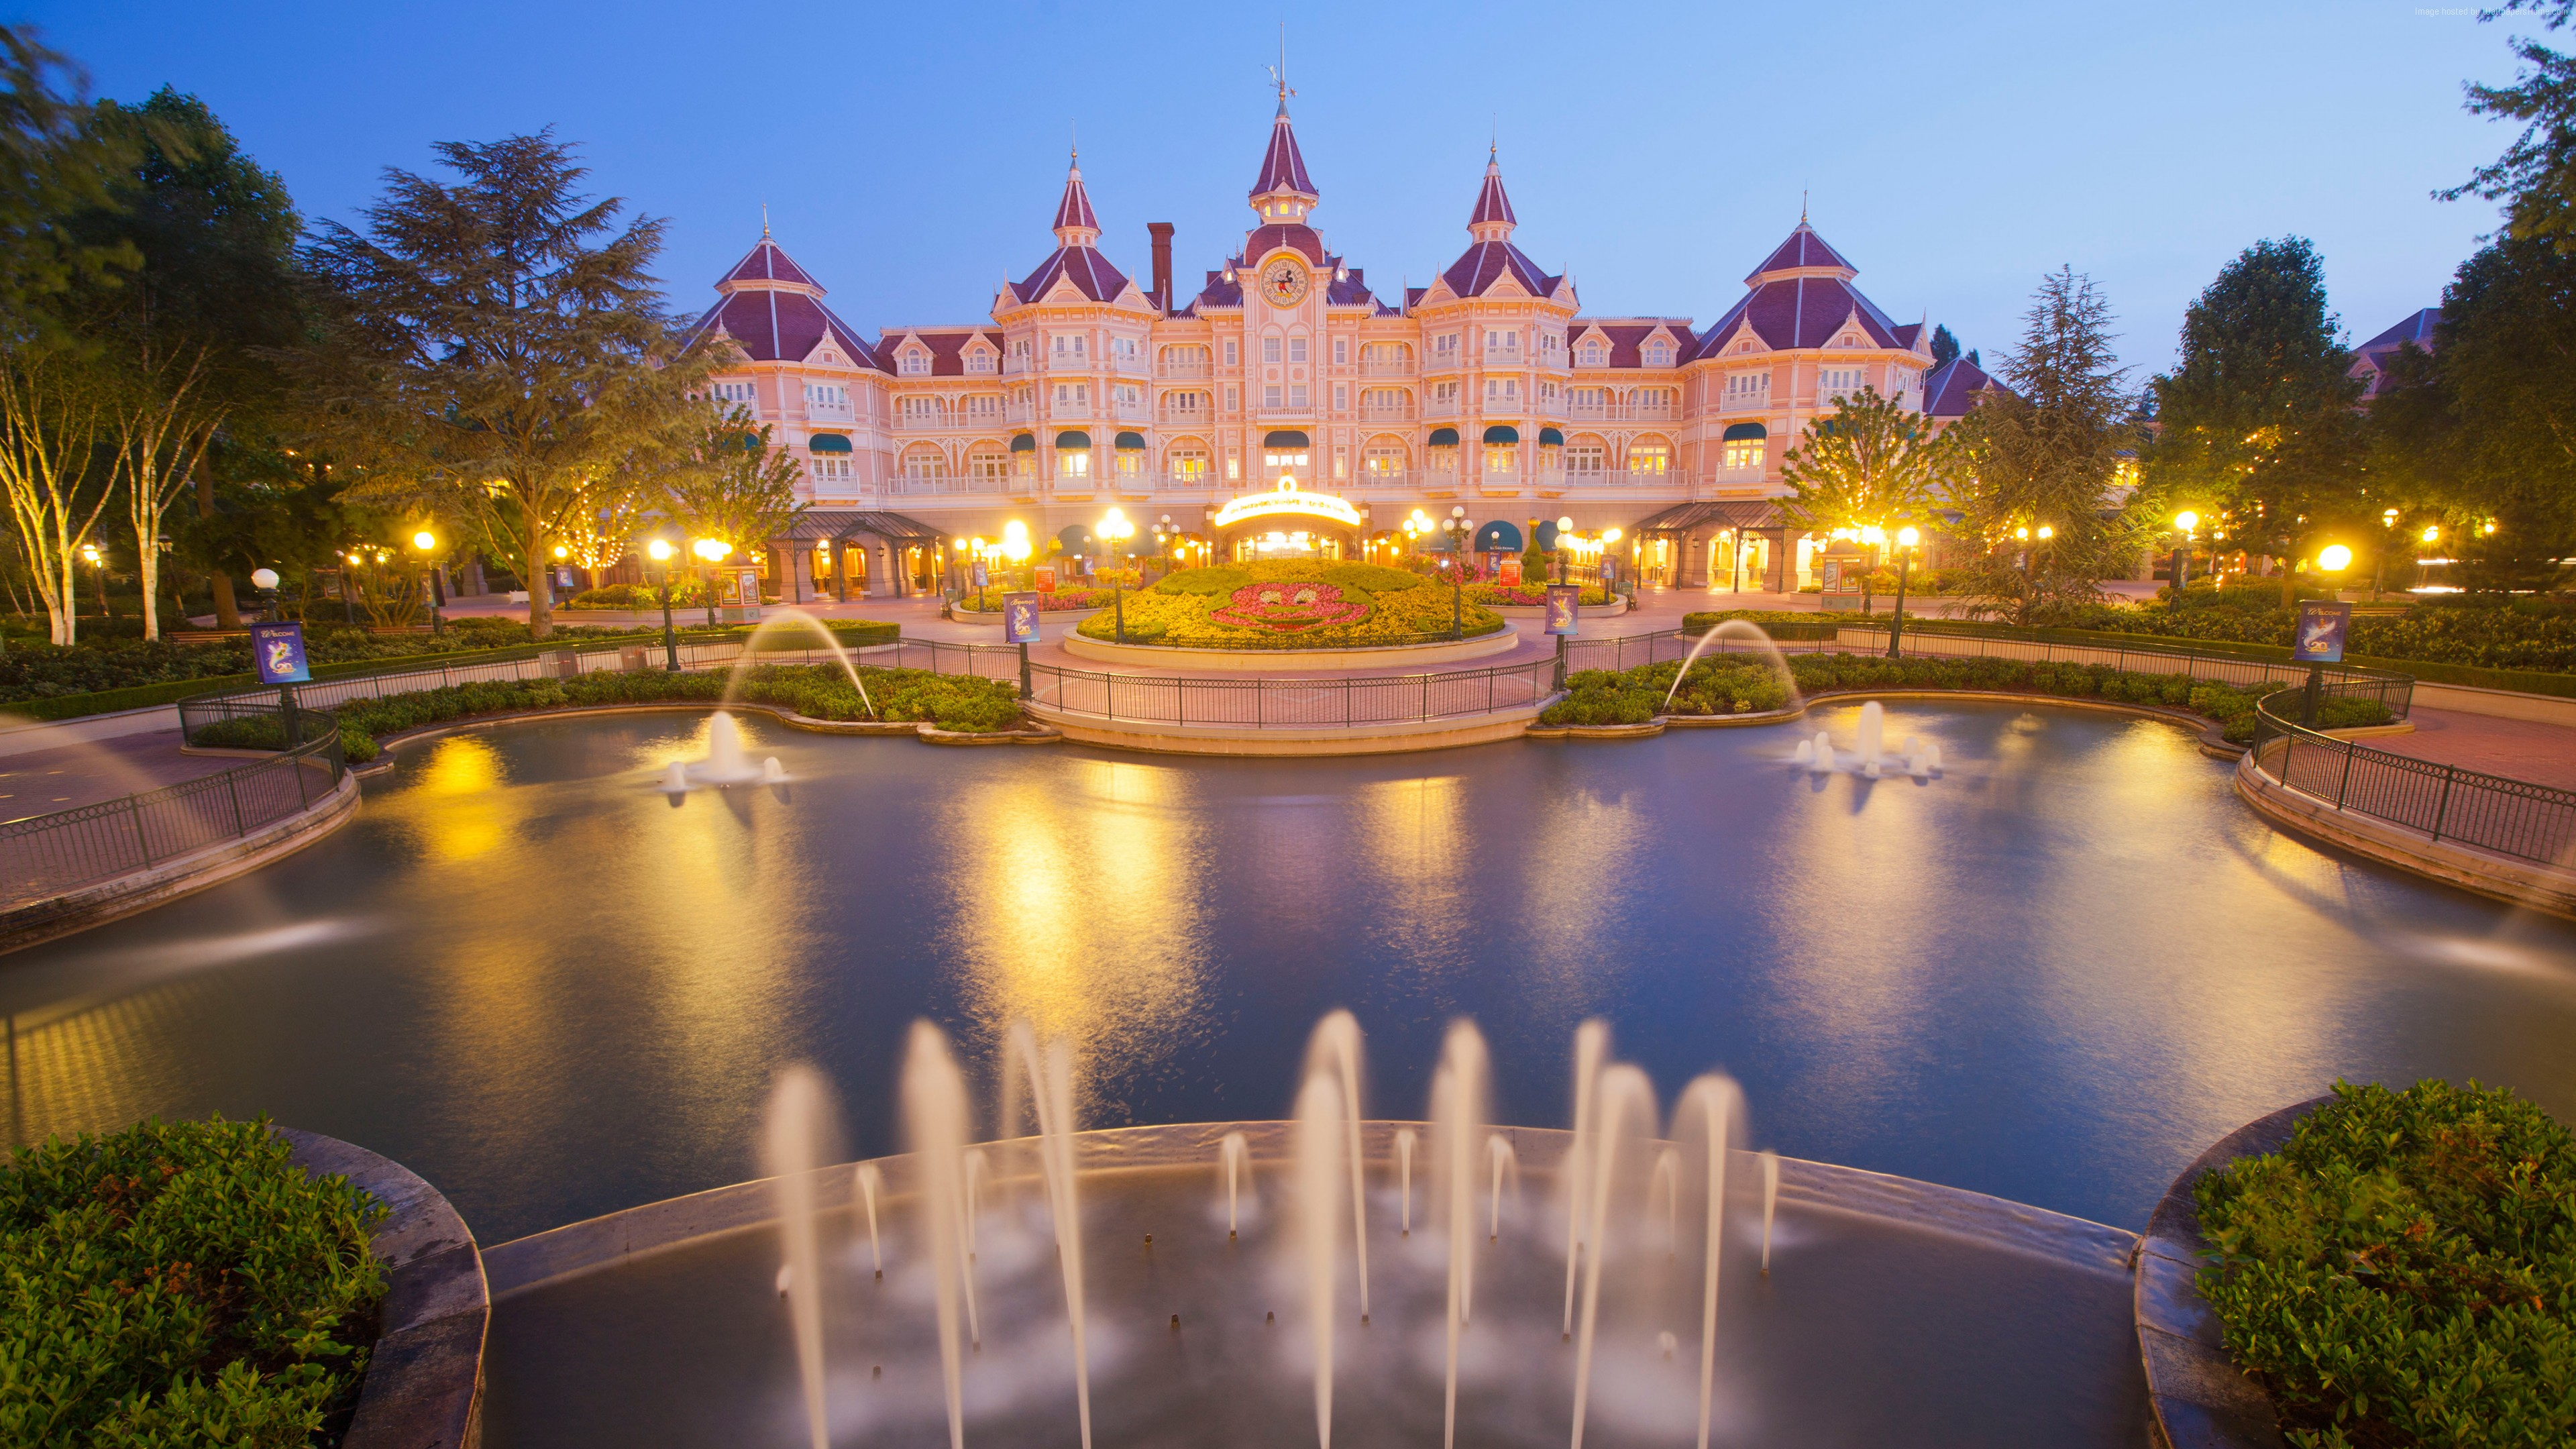 Wallpaper Disneyland Hotel, Paris, France, Europe, fountain, 4k, Architecture